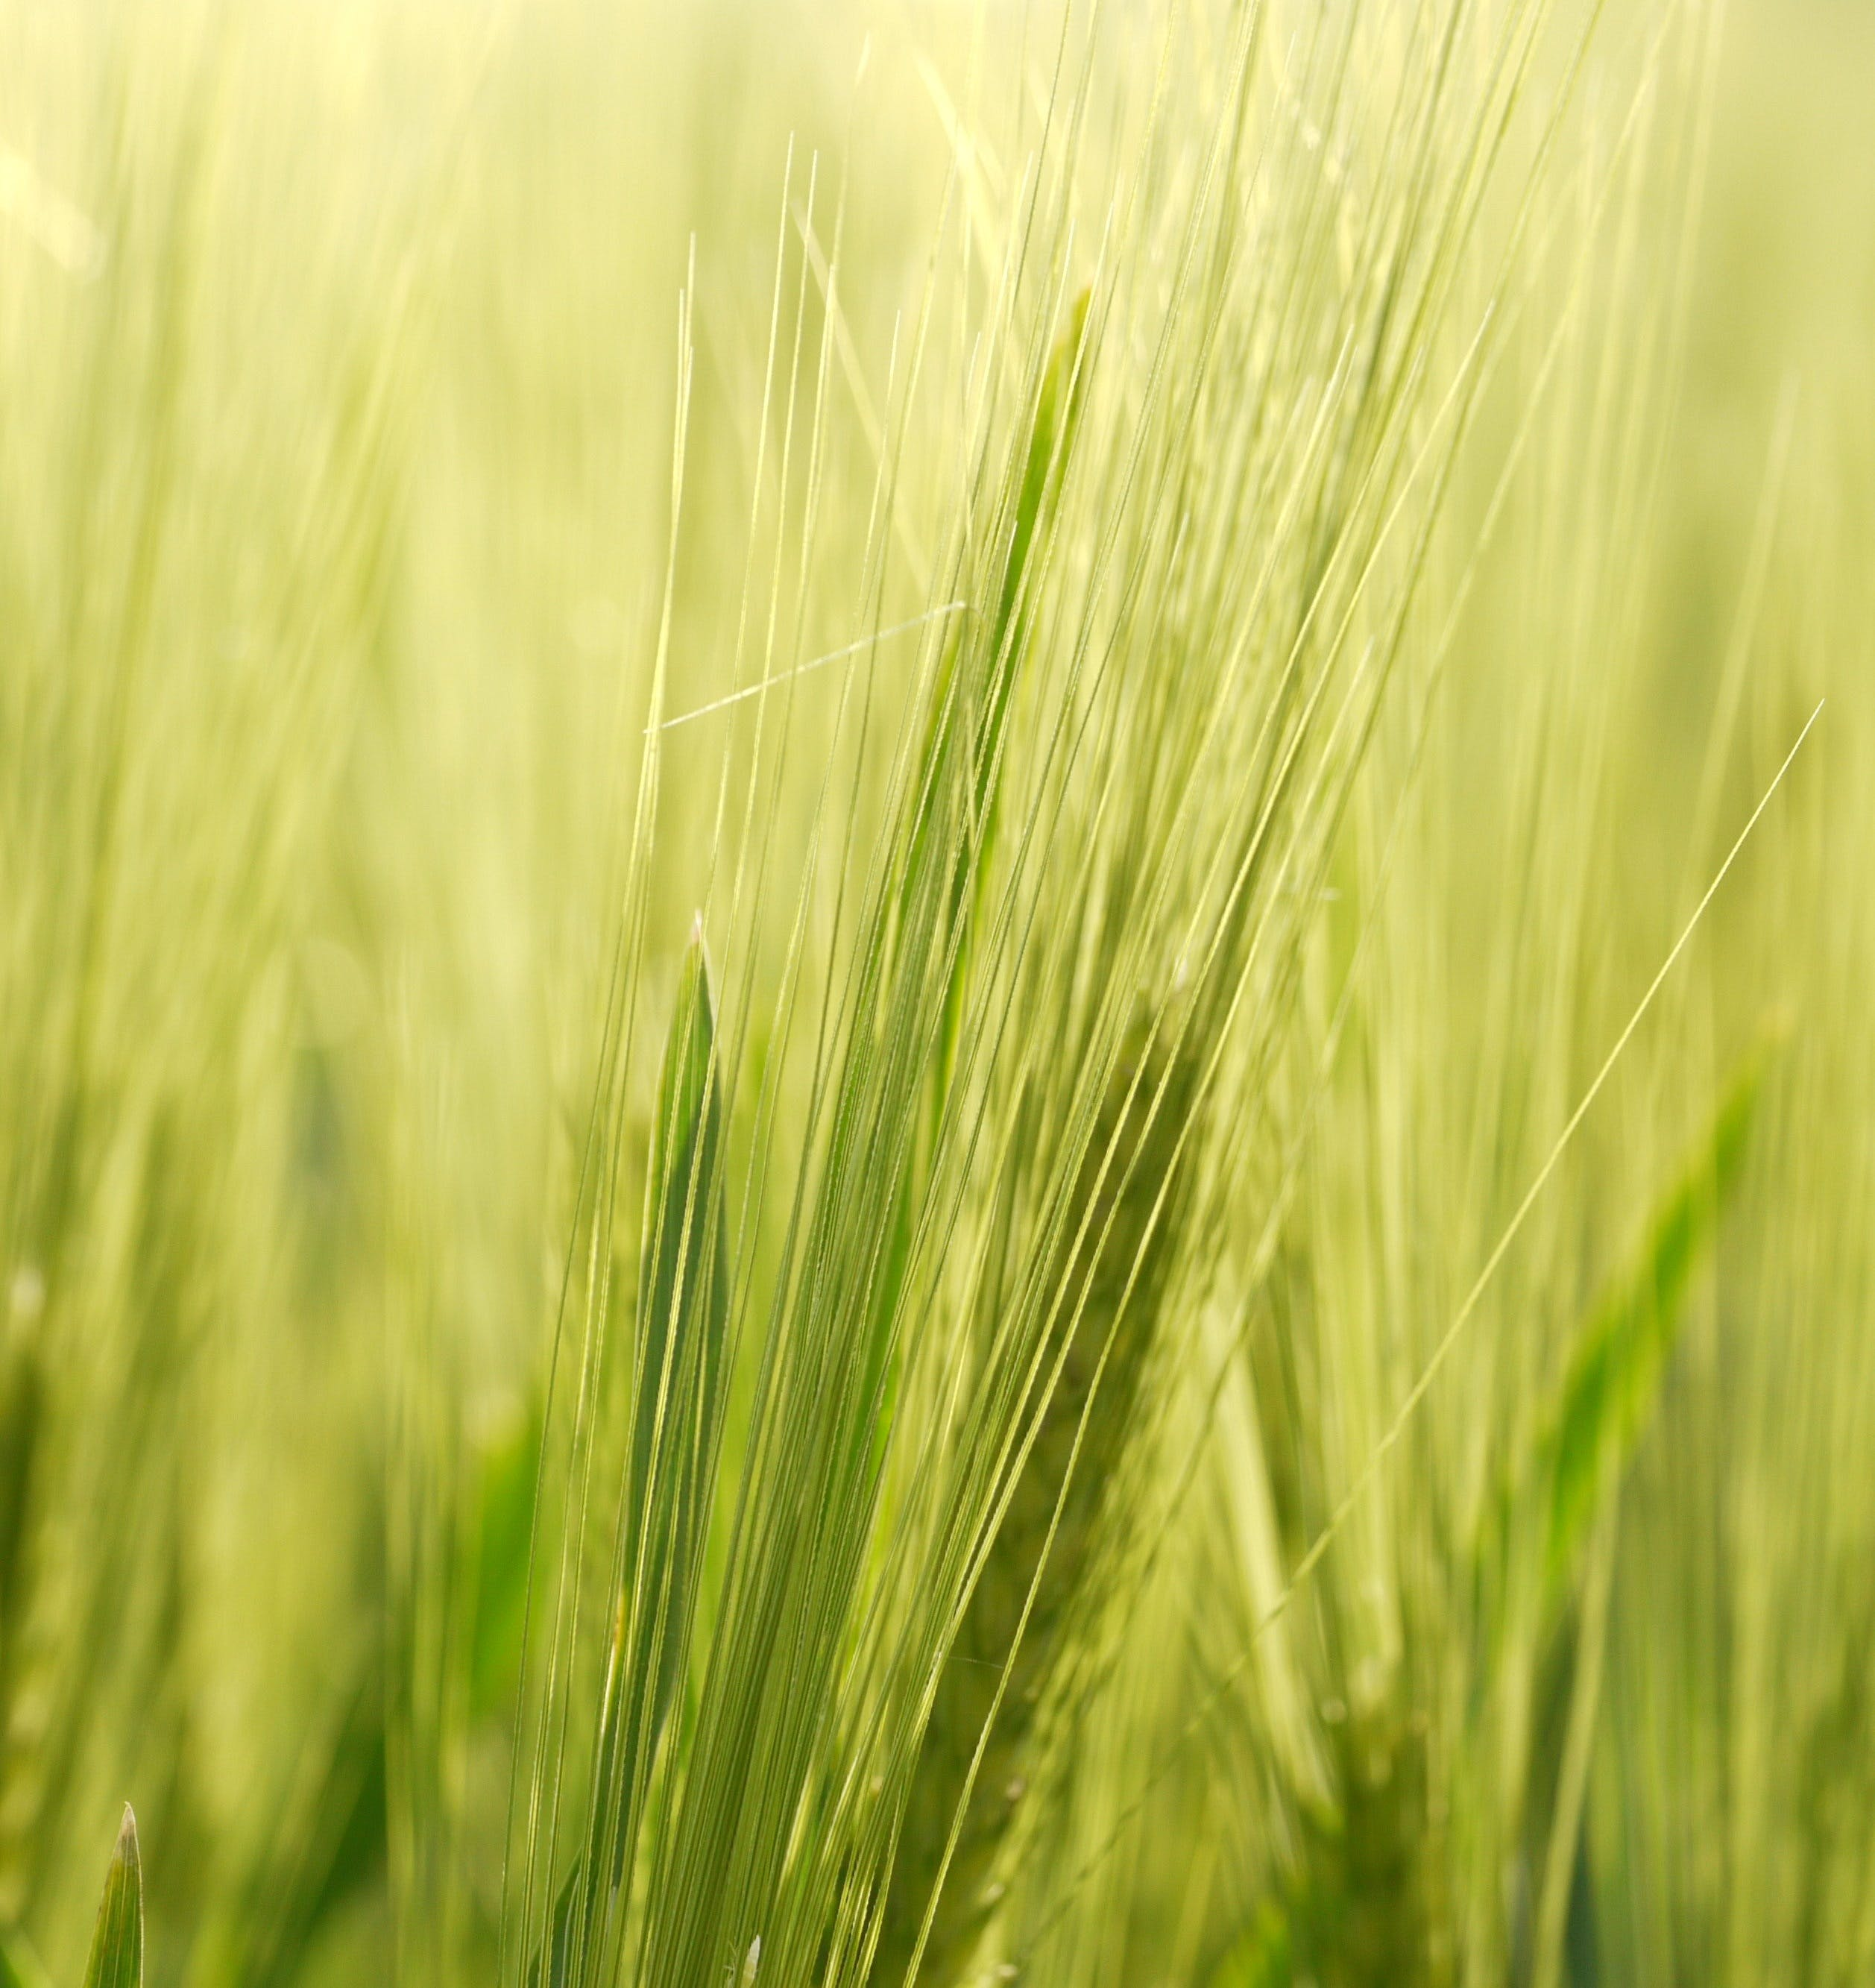 Free stock photo of field, cereals, grain, background